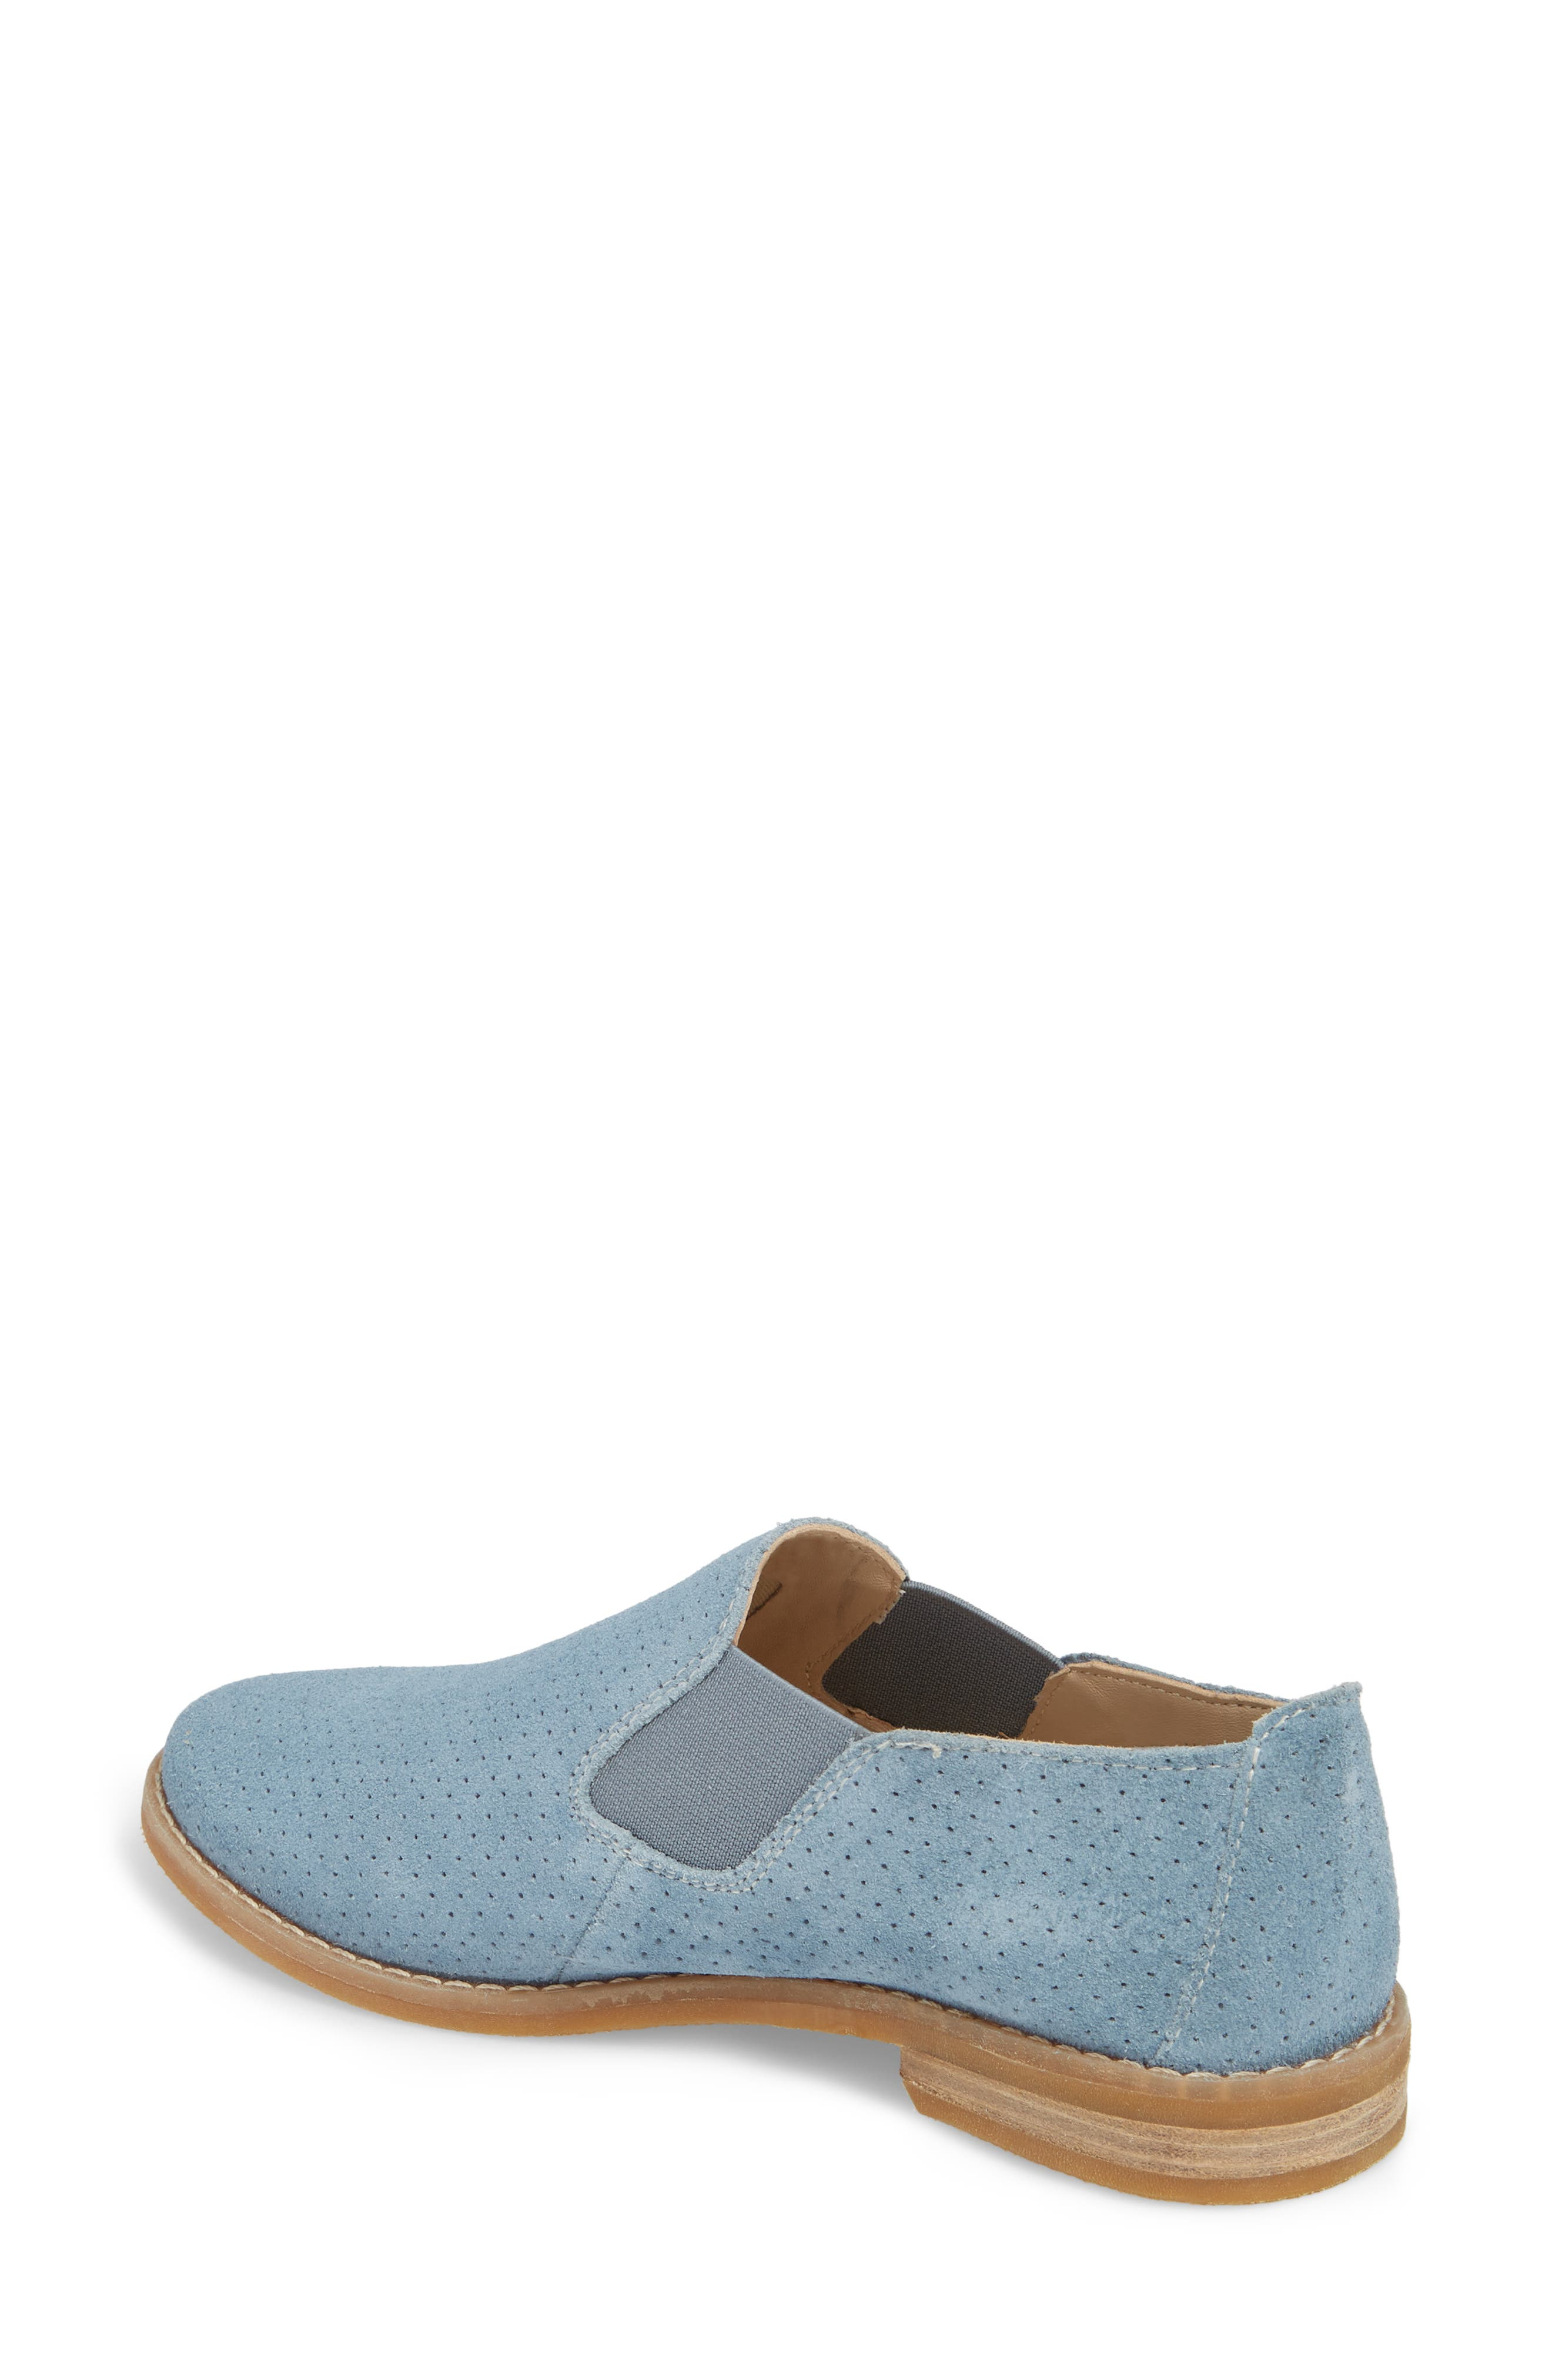 Hush Puppies Analise Clever Slip-On,                             Alternate thumbnail 2, color,                             VINTAGE INDIGO SUEDE